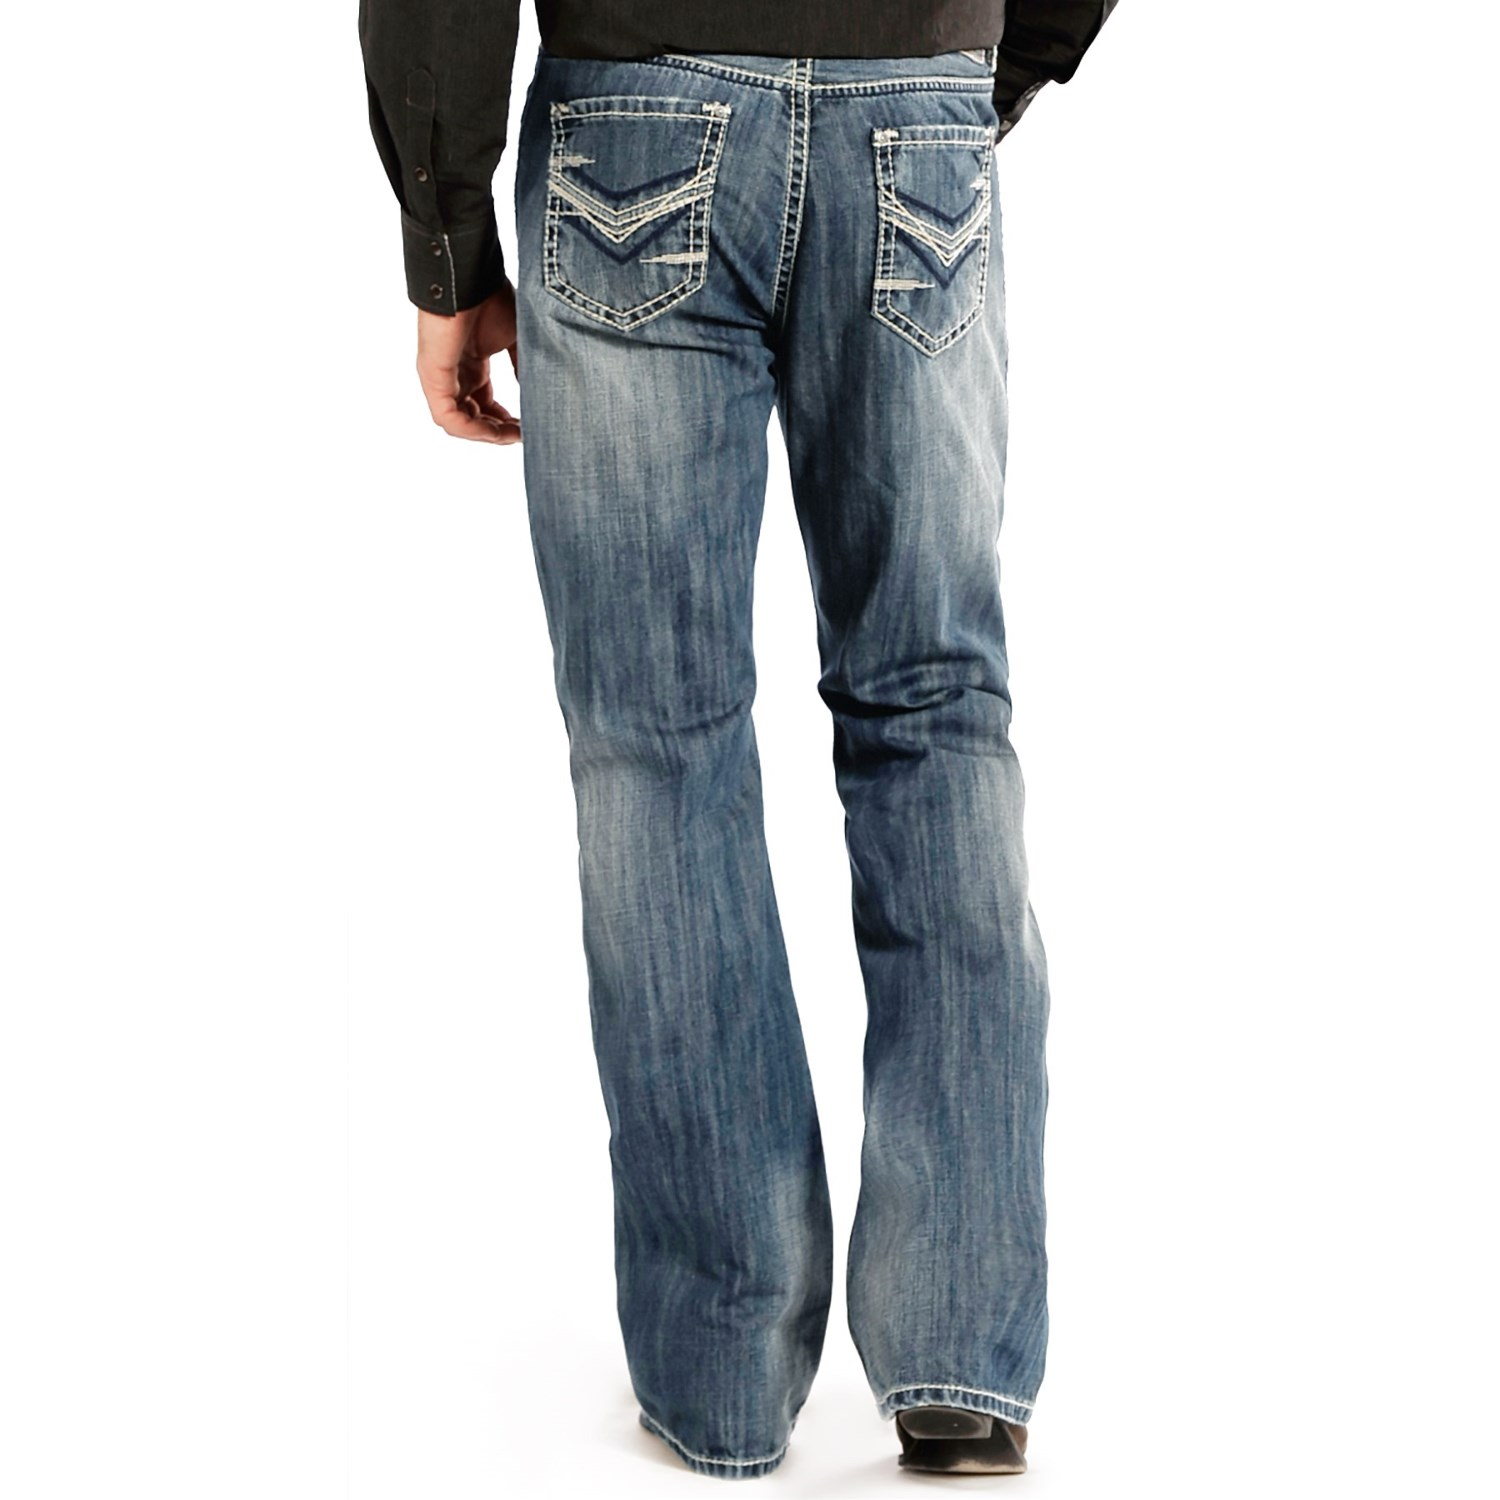 Men's relaxed fit bootcut jeans uk – Global fashion jeans models